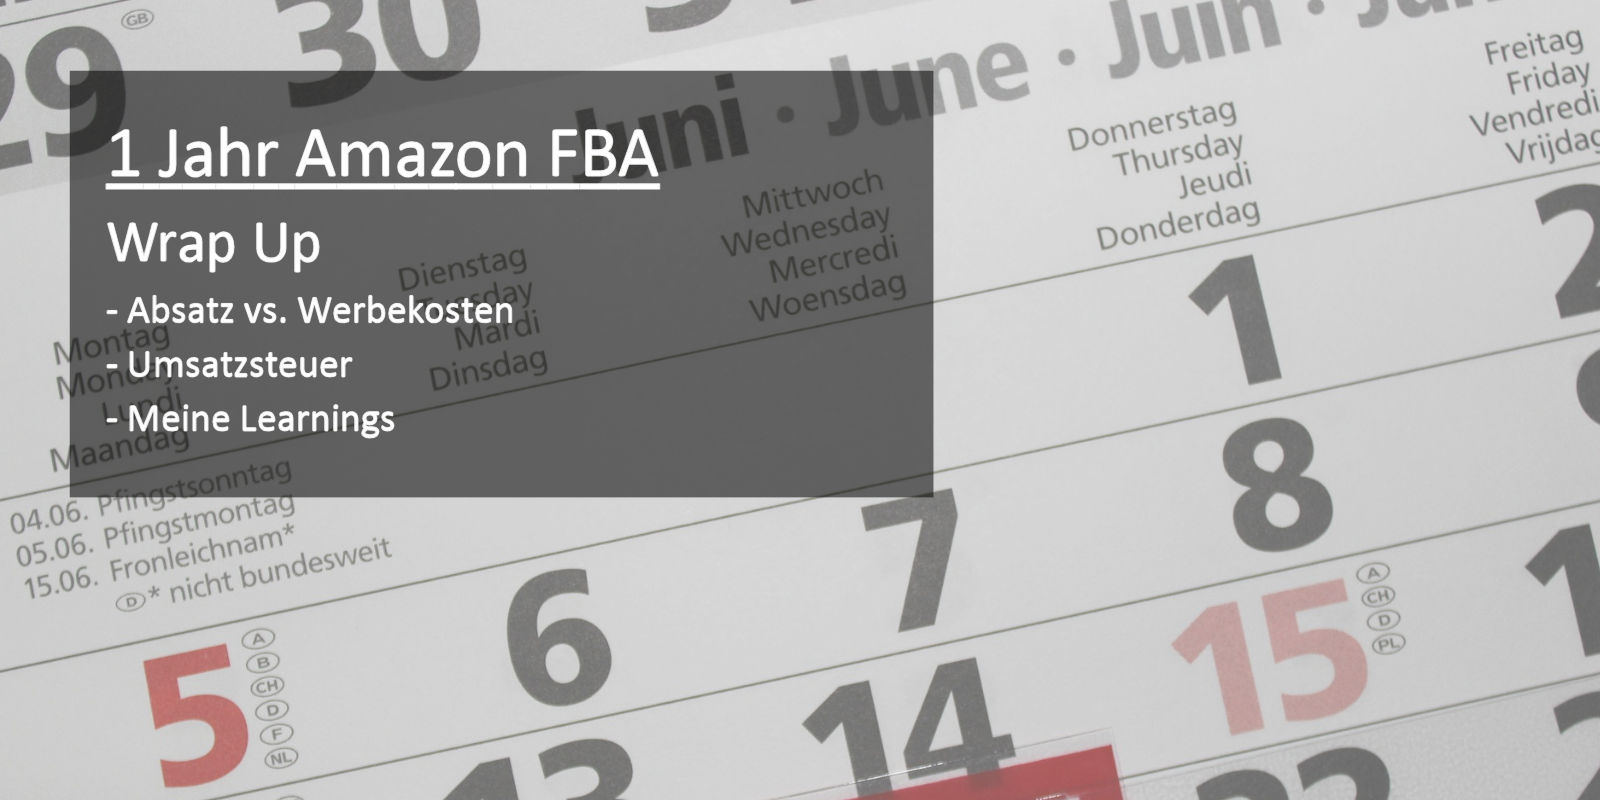 1 Jahr Amazon FBA